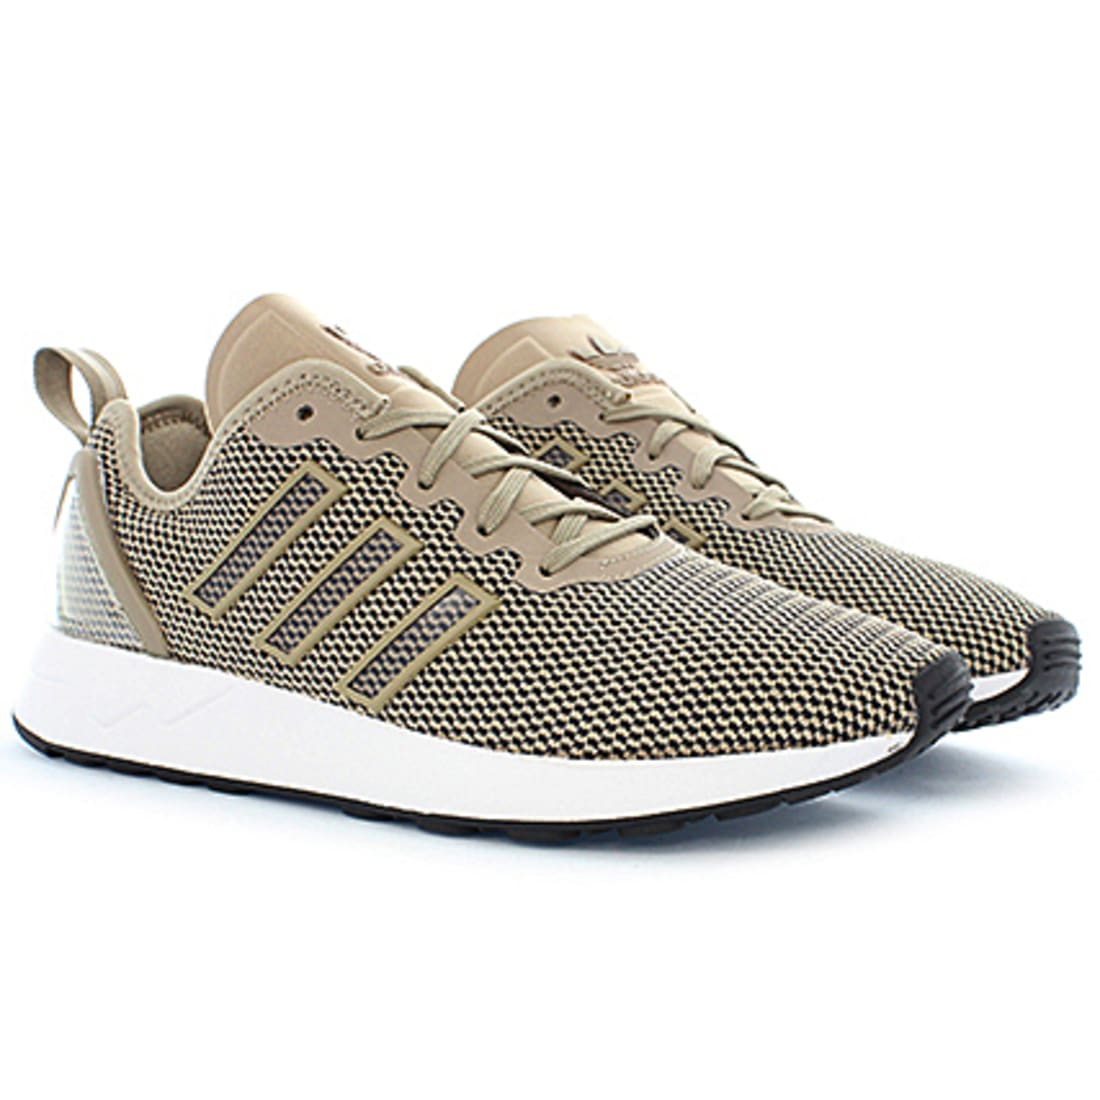 adidas Baskets ZX Flux Adv Carbone Noir Or